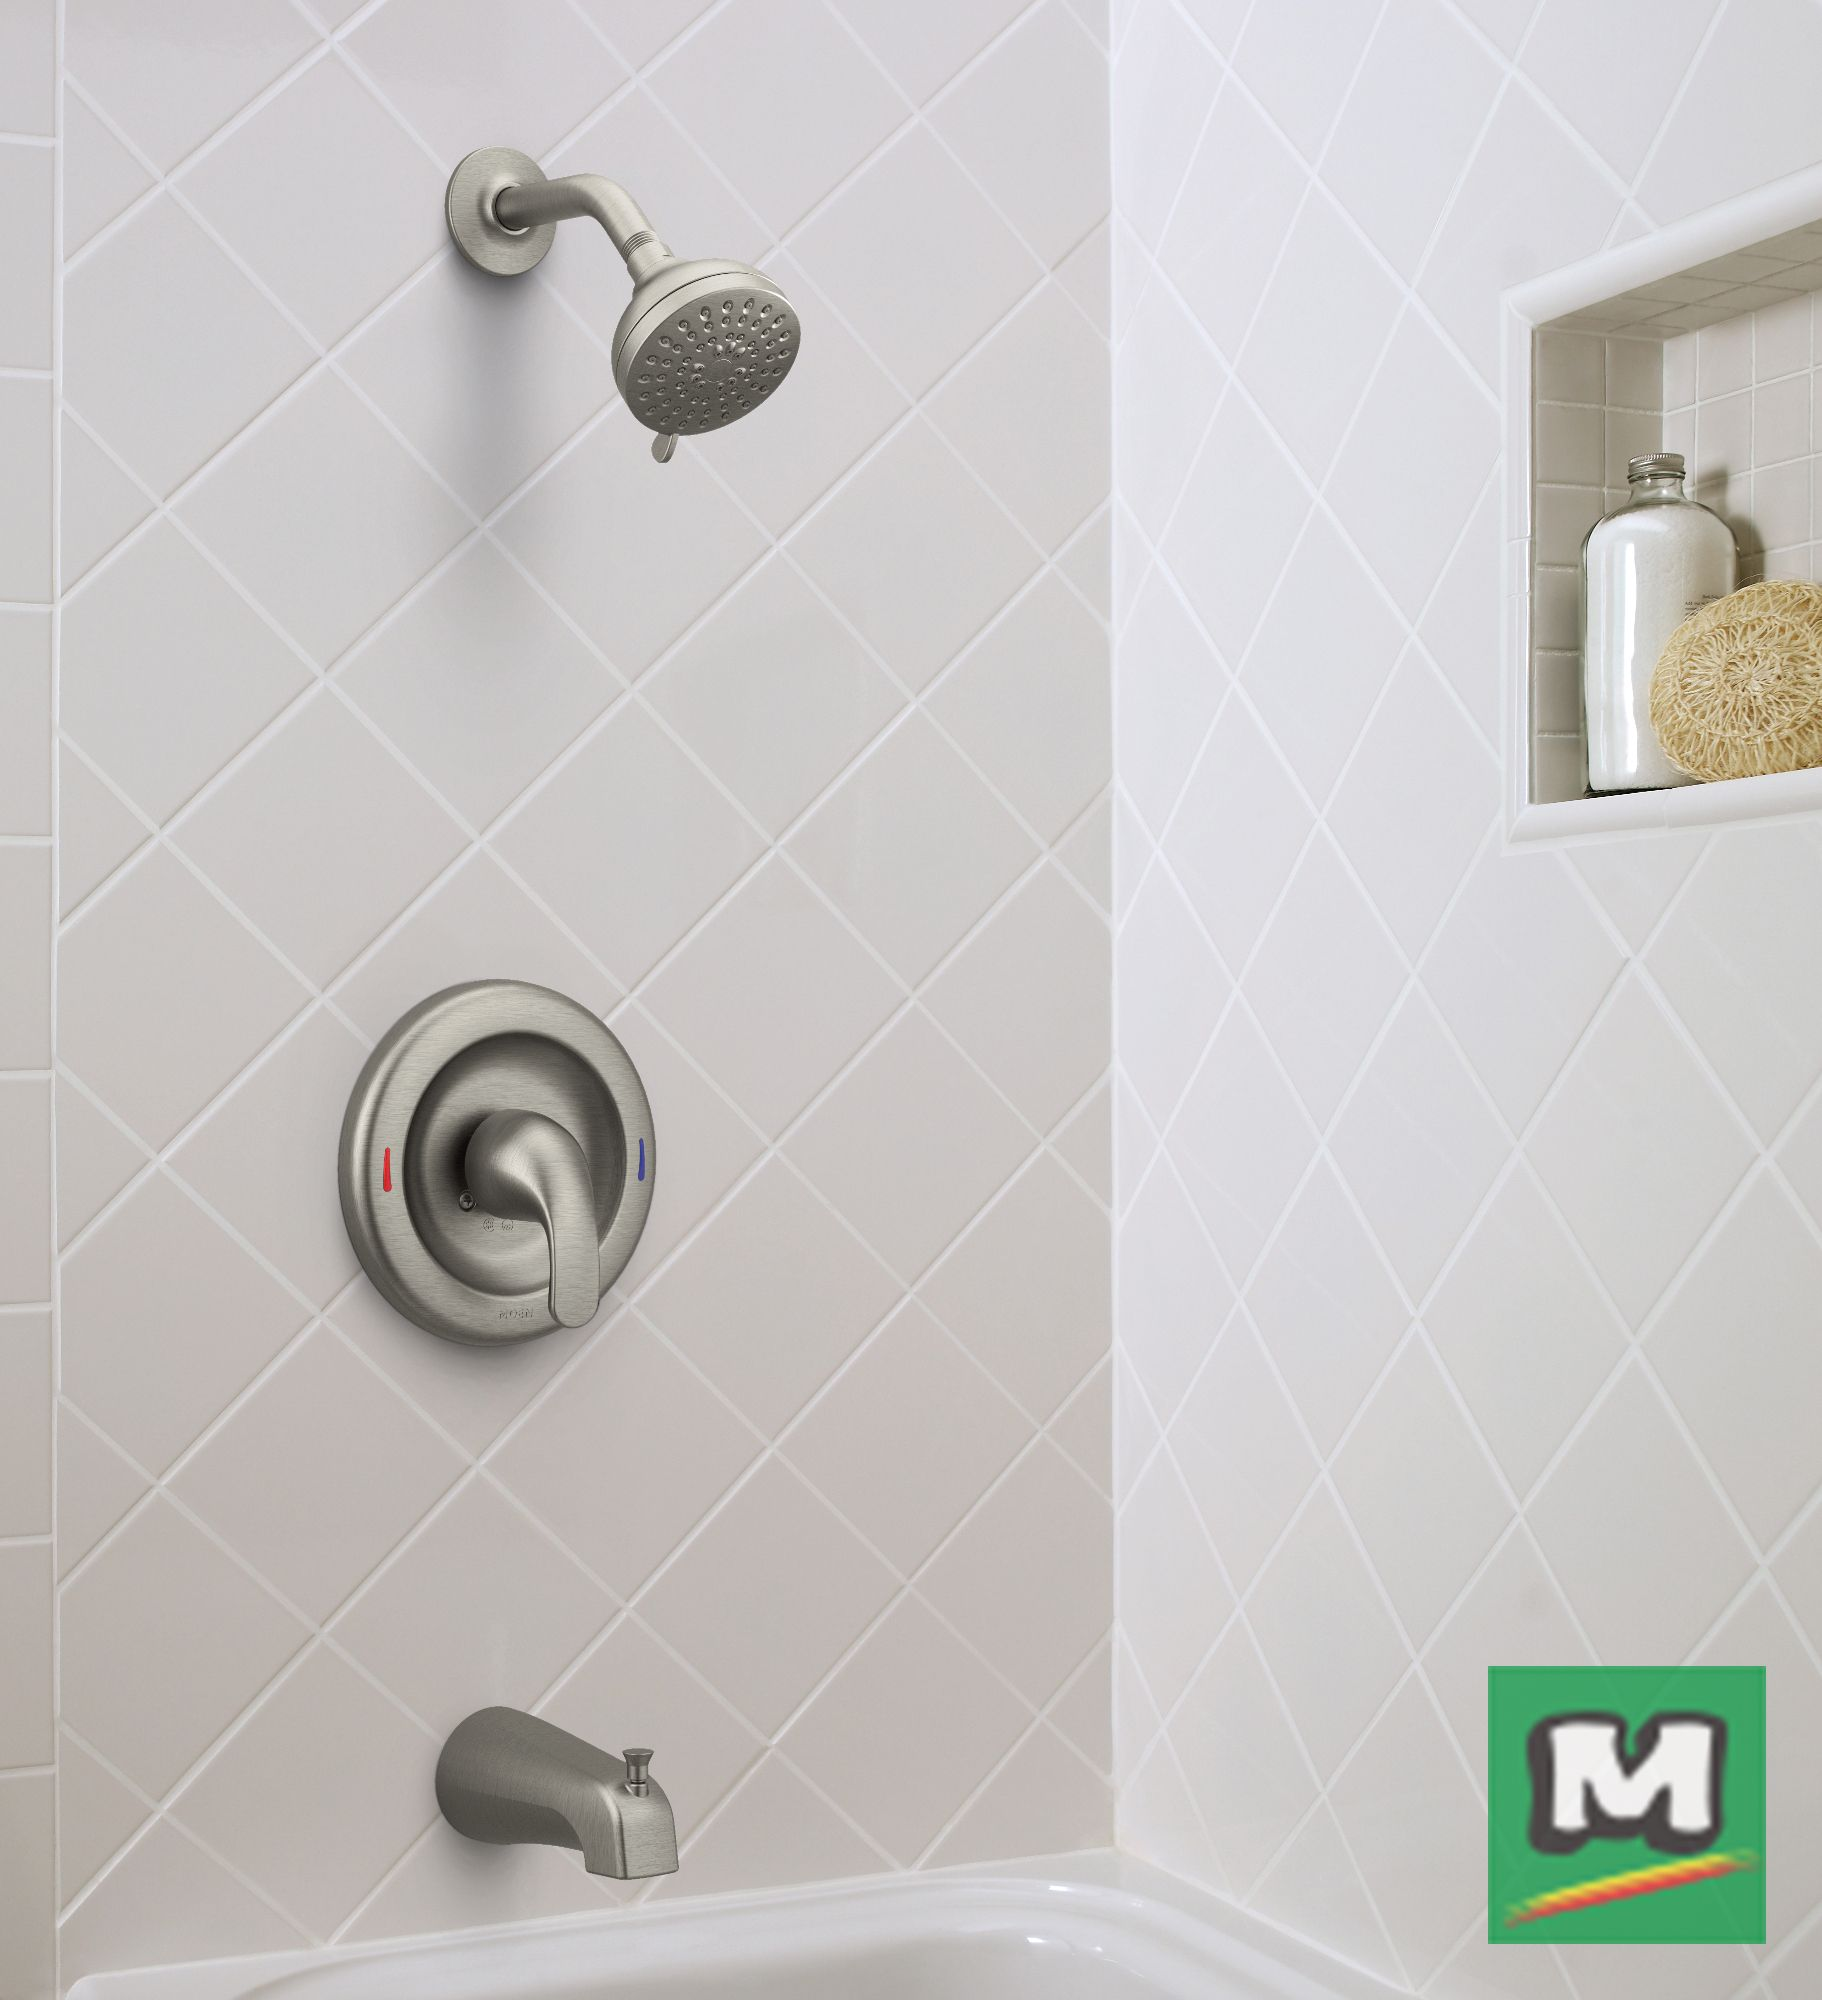 This Moen® Adler Posi-Temp® One-Handle Tub/Shower Faucet is a fine ...